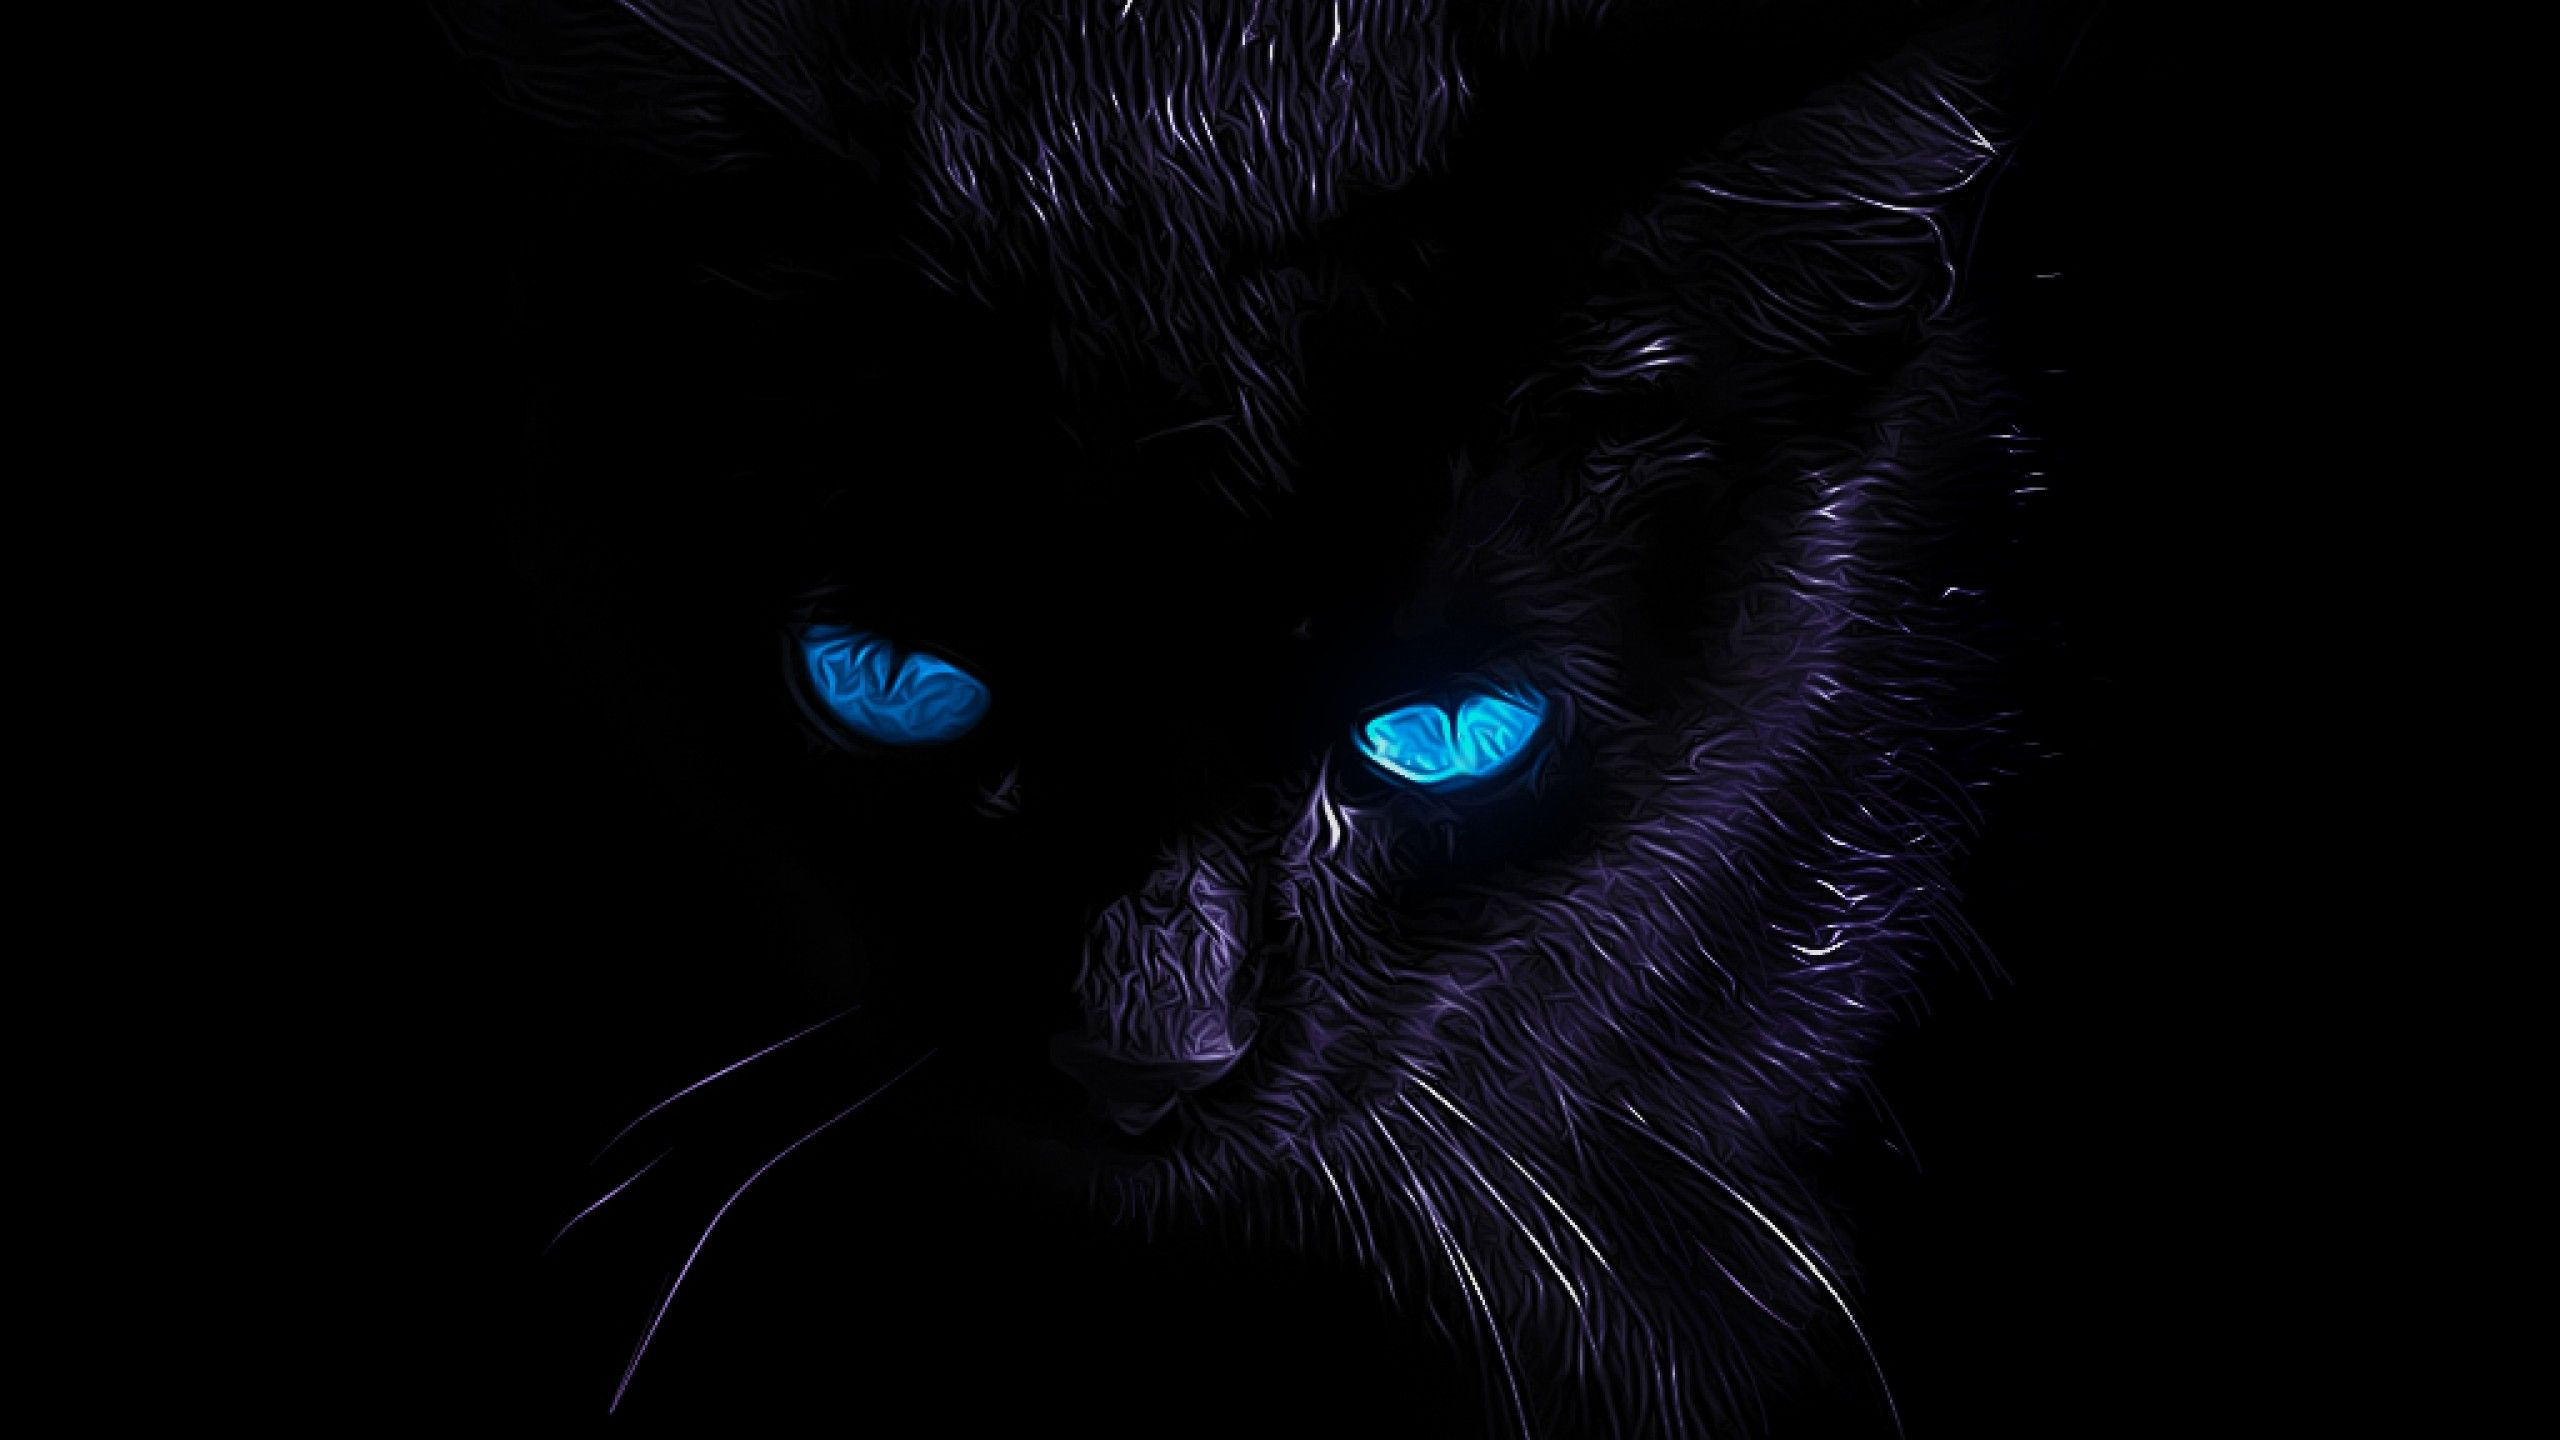 Black Cat Wallpaper Hd Blue Eyes Awesome Wallpaper Cat